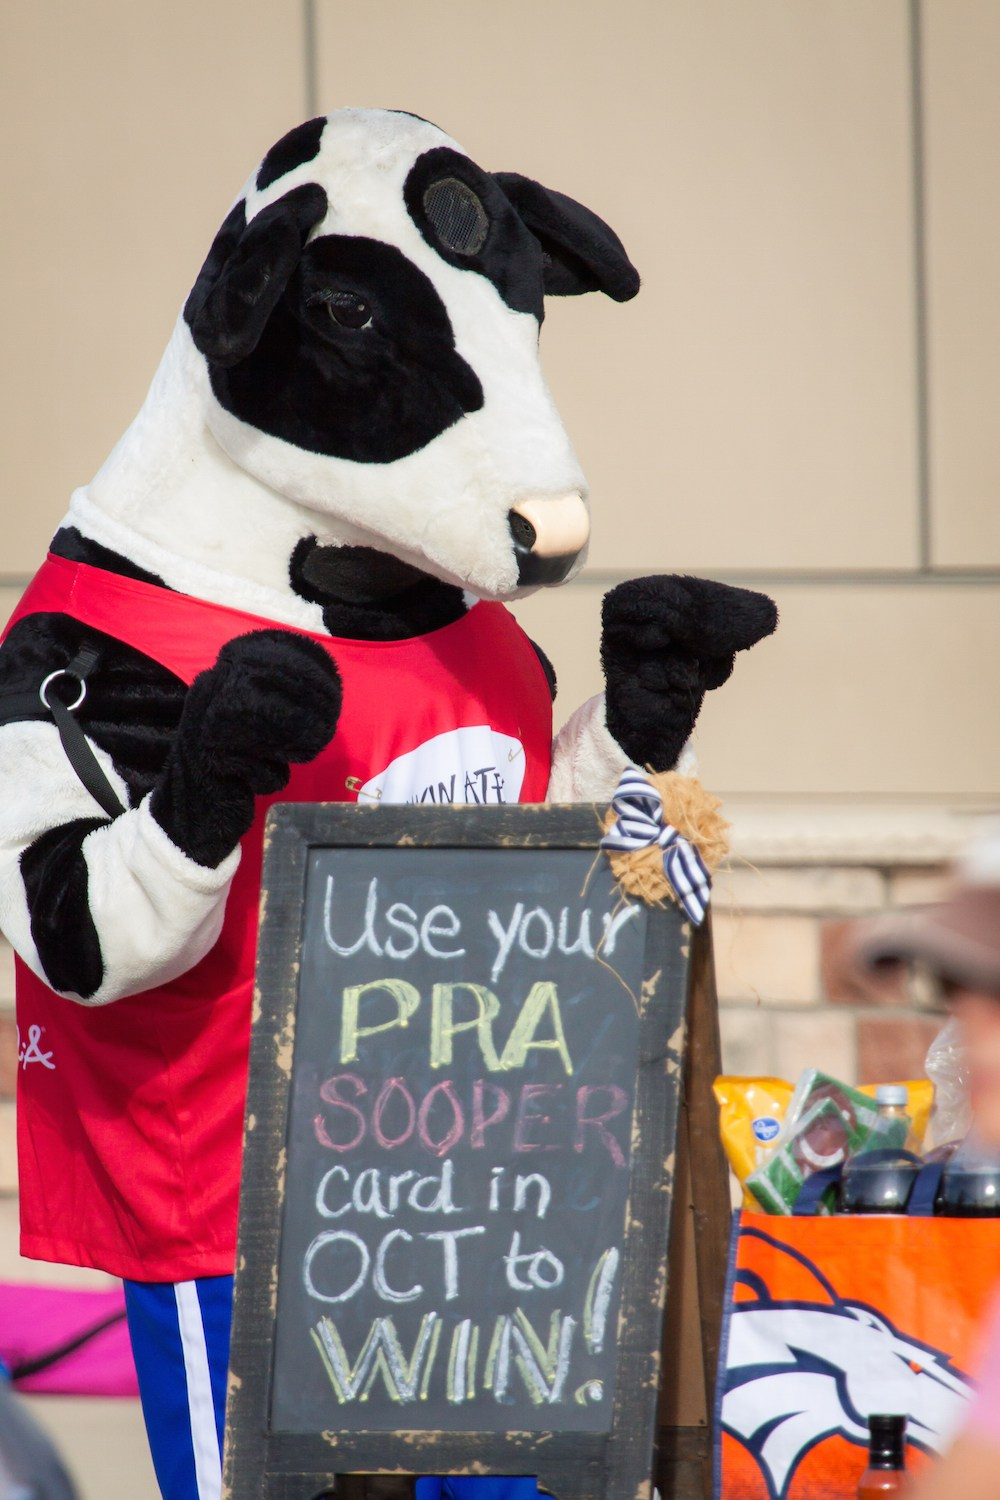 Chick-fil-a cow holding sign